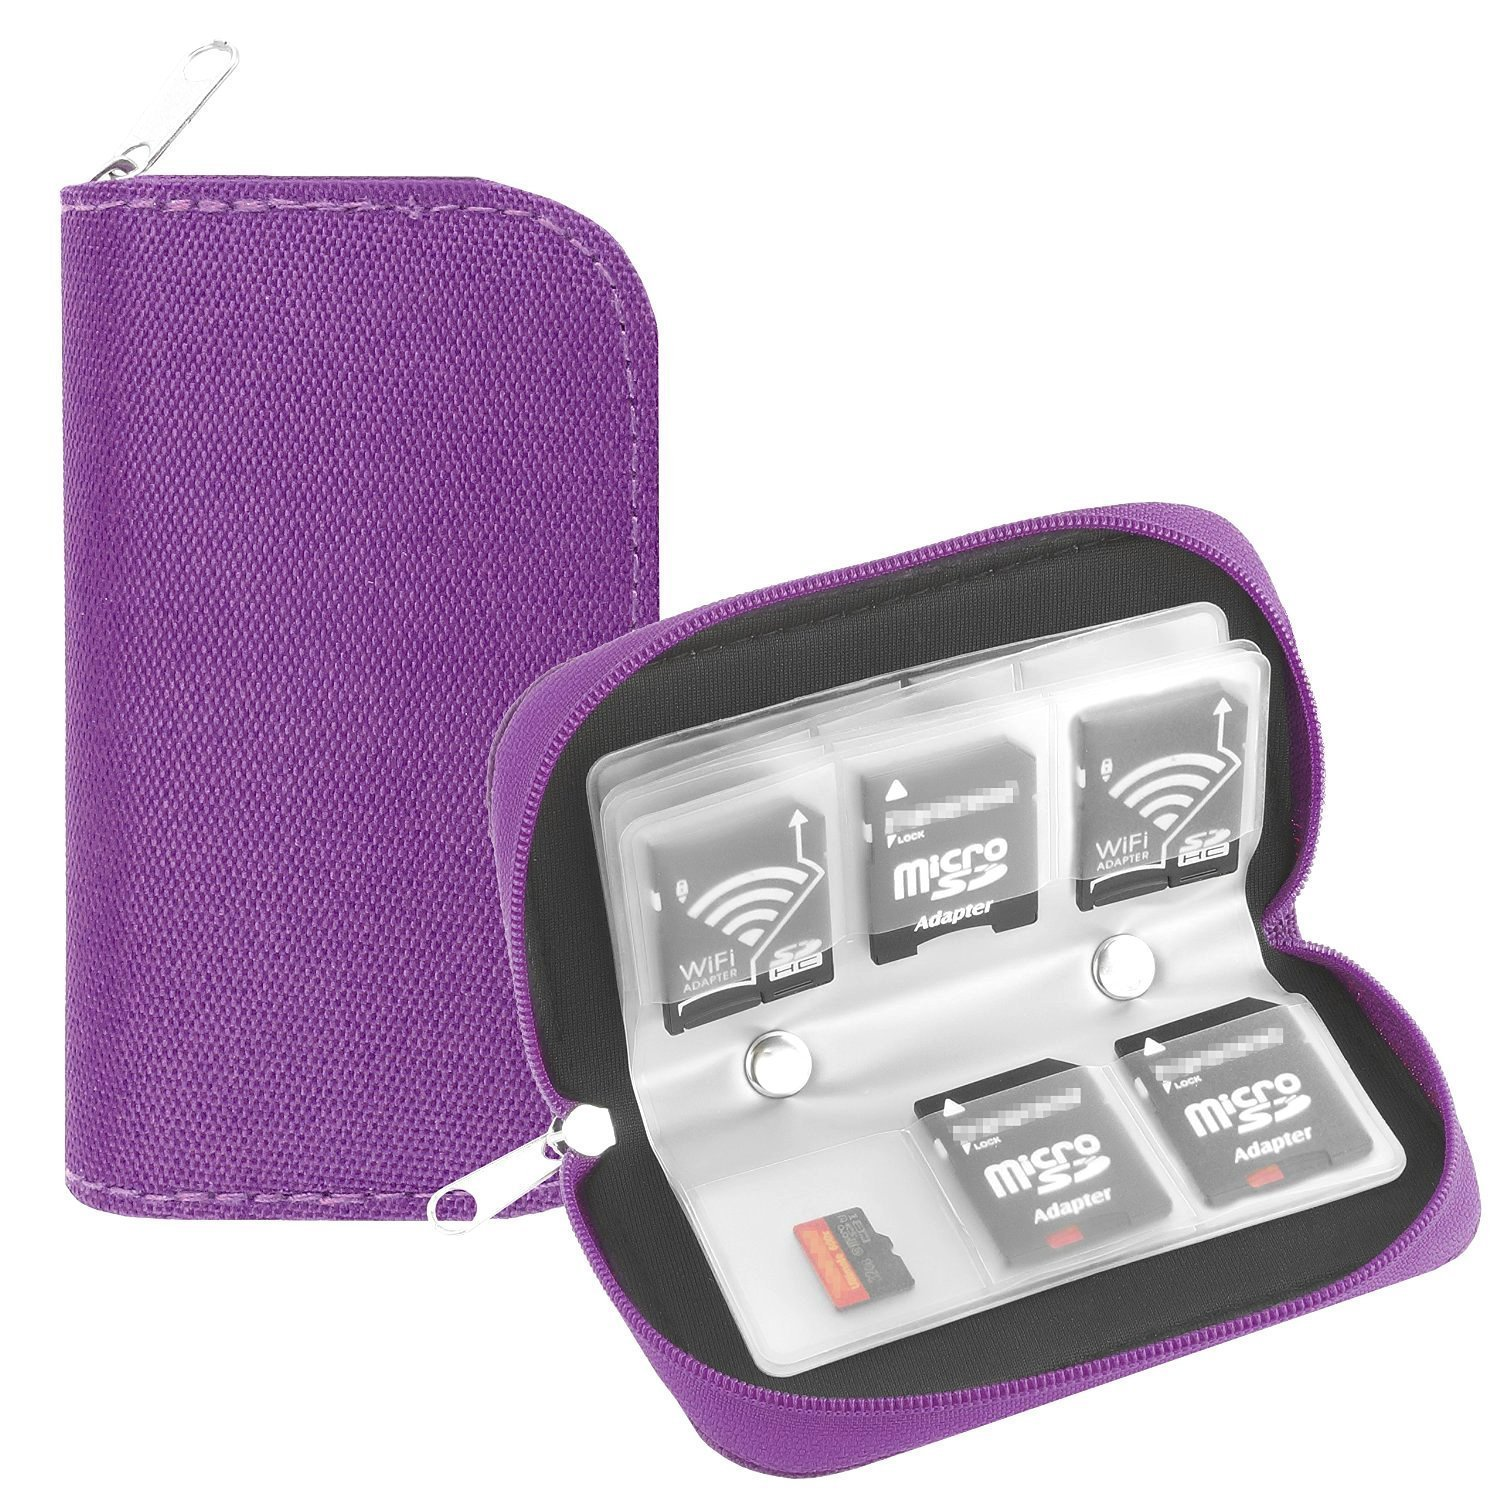 Memory Card Case, WOVTE Portable 8 Pages and 22 Slots SD SDHC MMC CF Micro SD Memory Camera Card Case Holder Pouch Zippered Storage Bag (Purple) LYSB01AFQCC3Q-CMPTRACCS